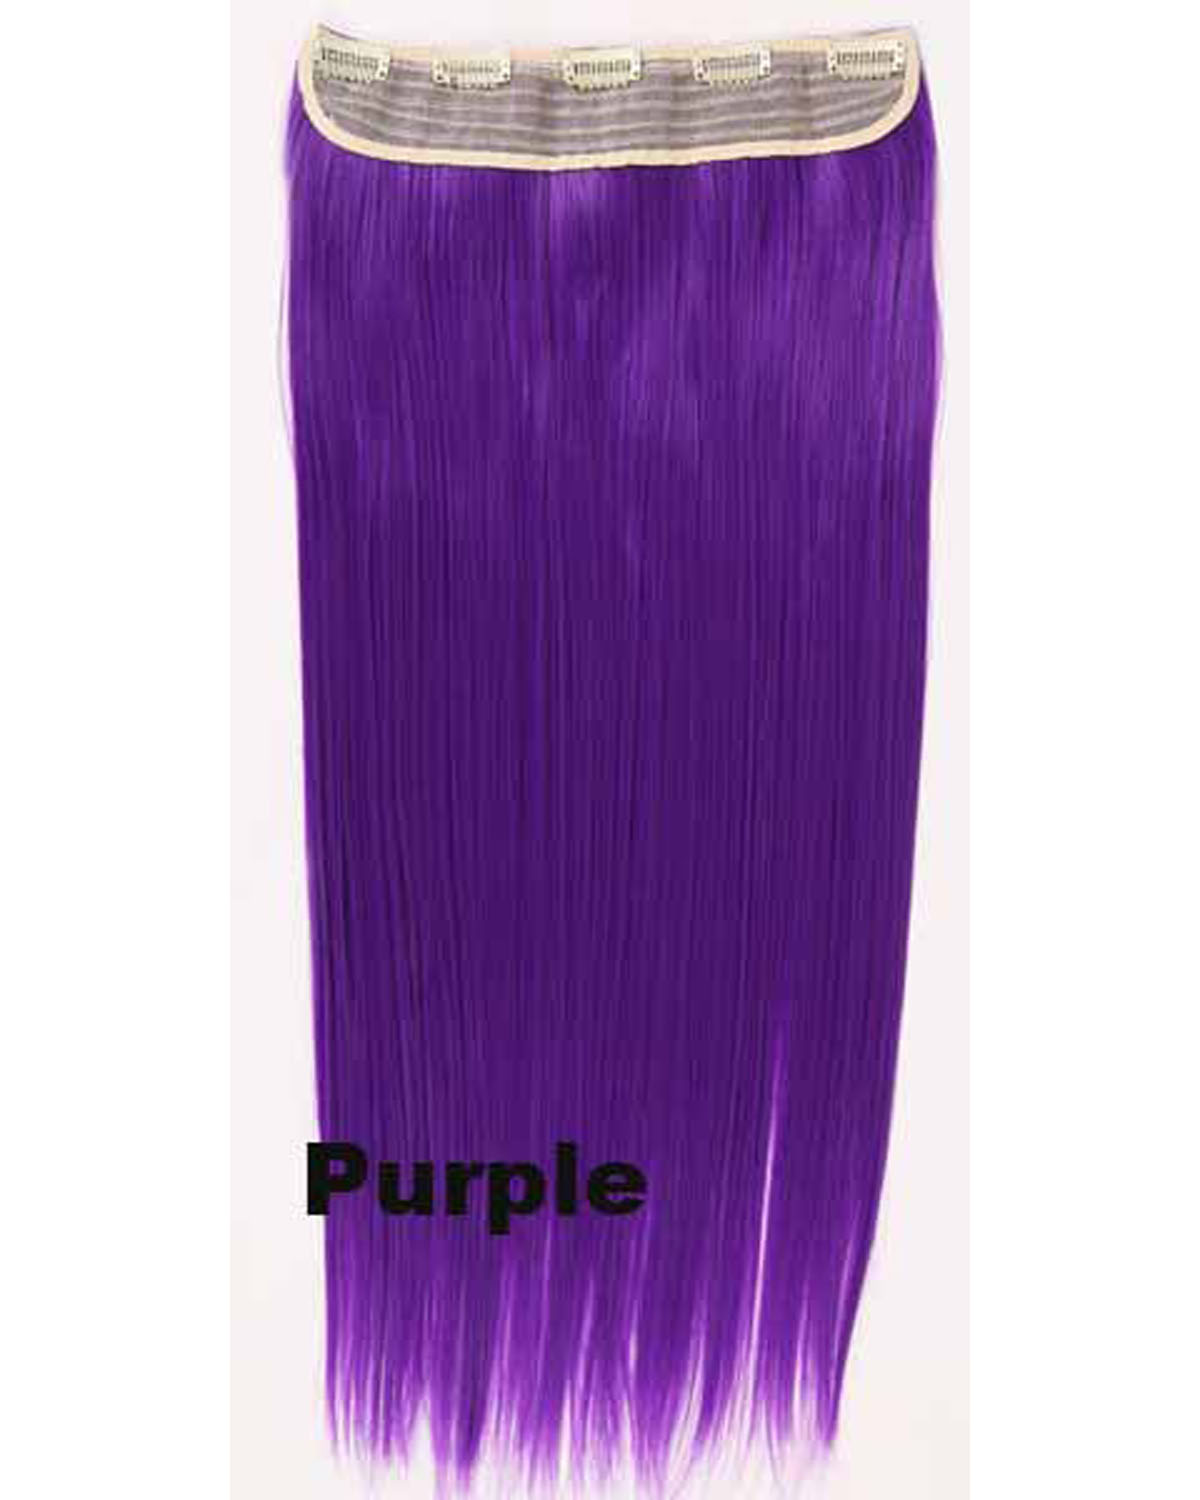 24 Inch Female Colorful  Long Straight One Piece 5 Clips Clip in Synthetic Hair Extension Purple